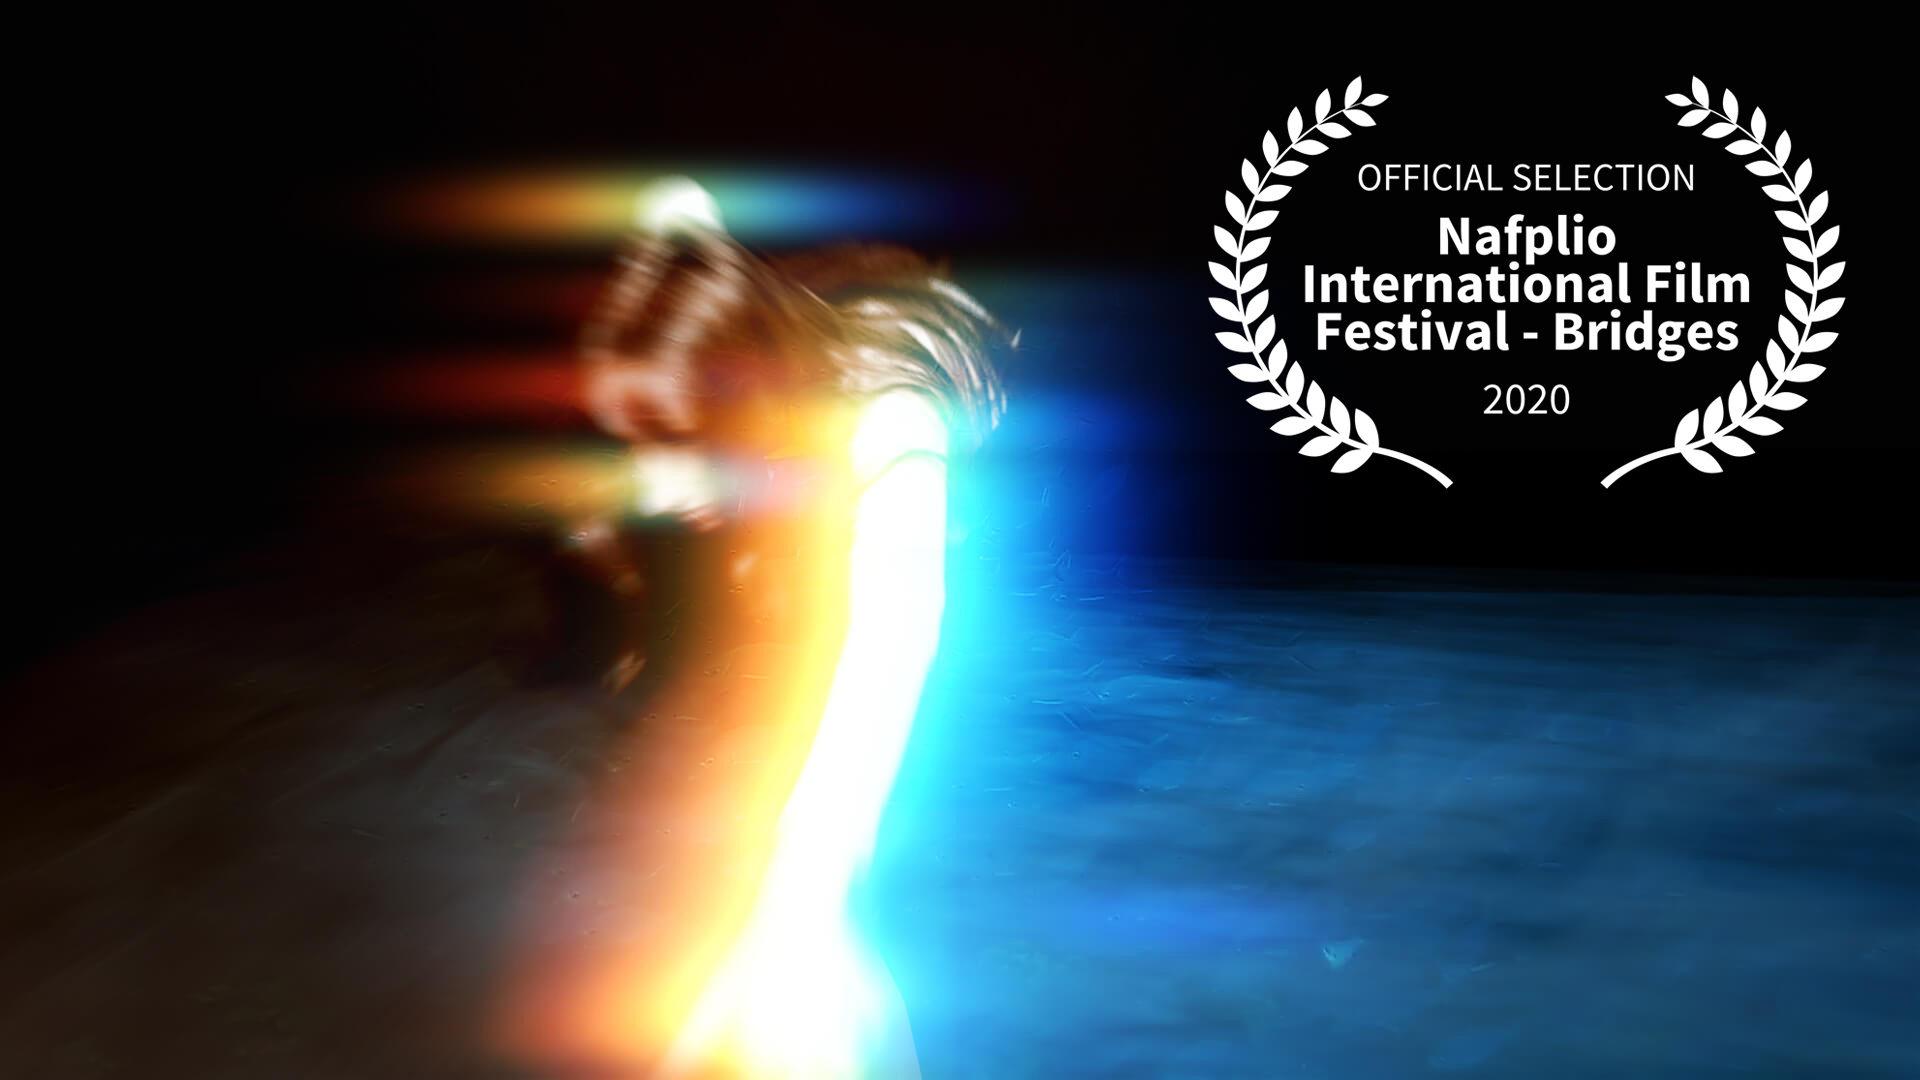 """Red Lion"" by Oh. Bridges International Film Festival at Nafplio, Greece"